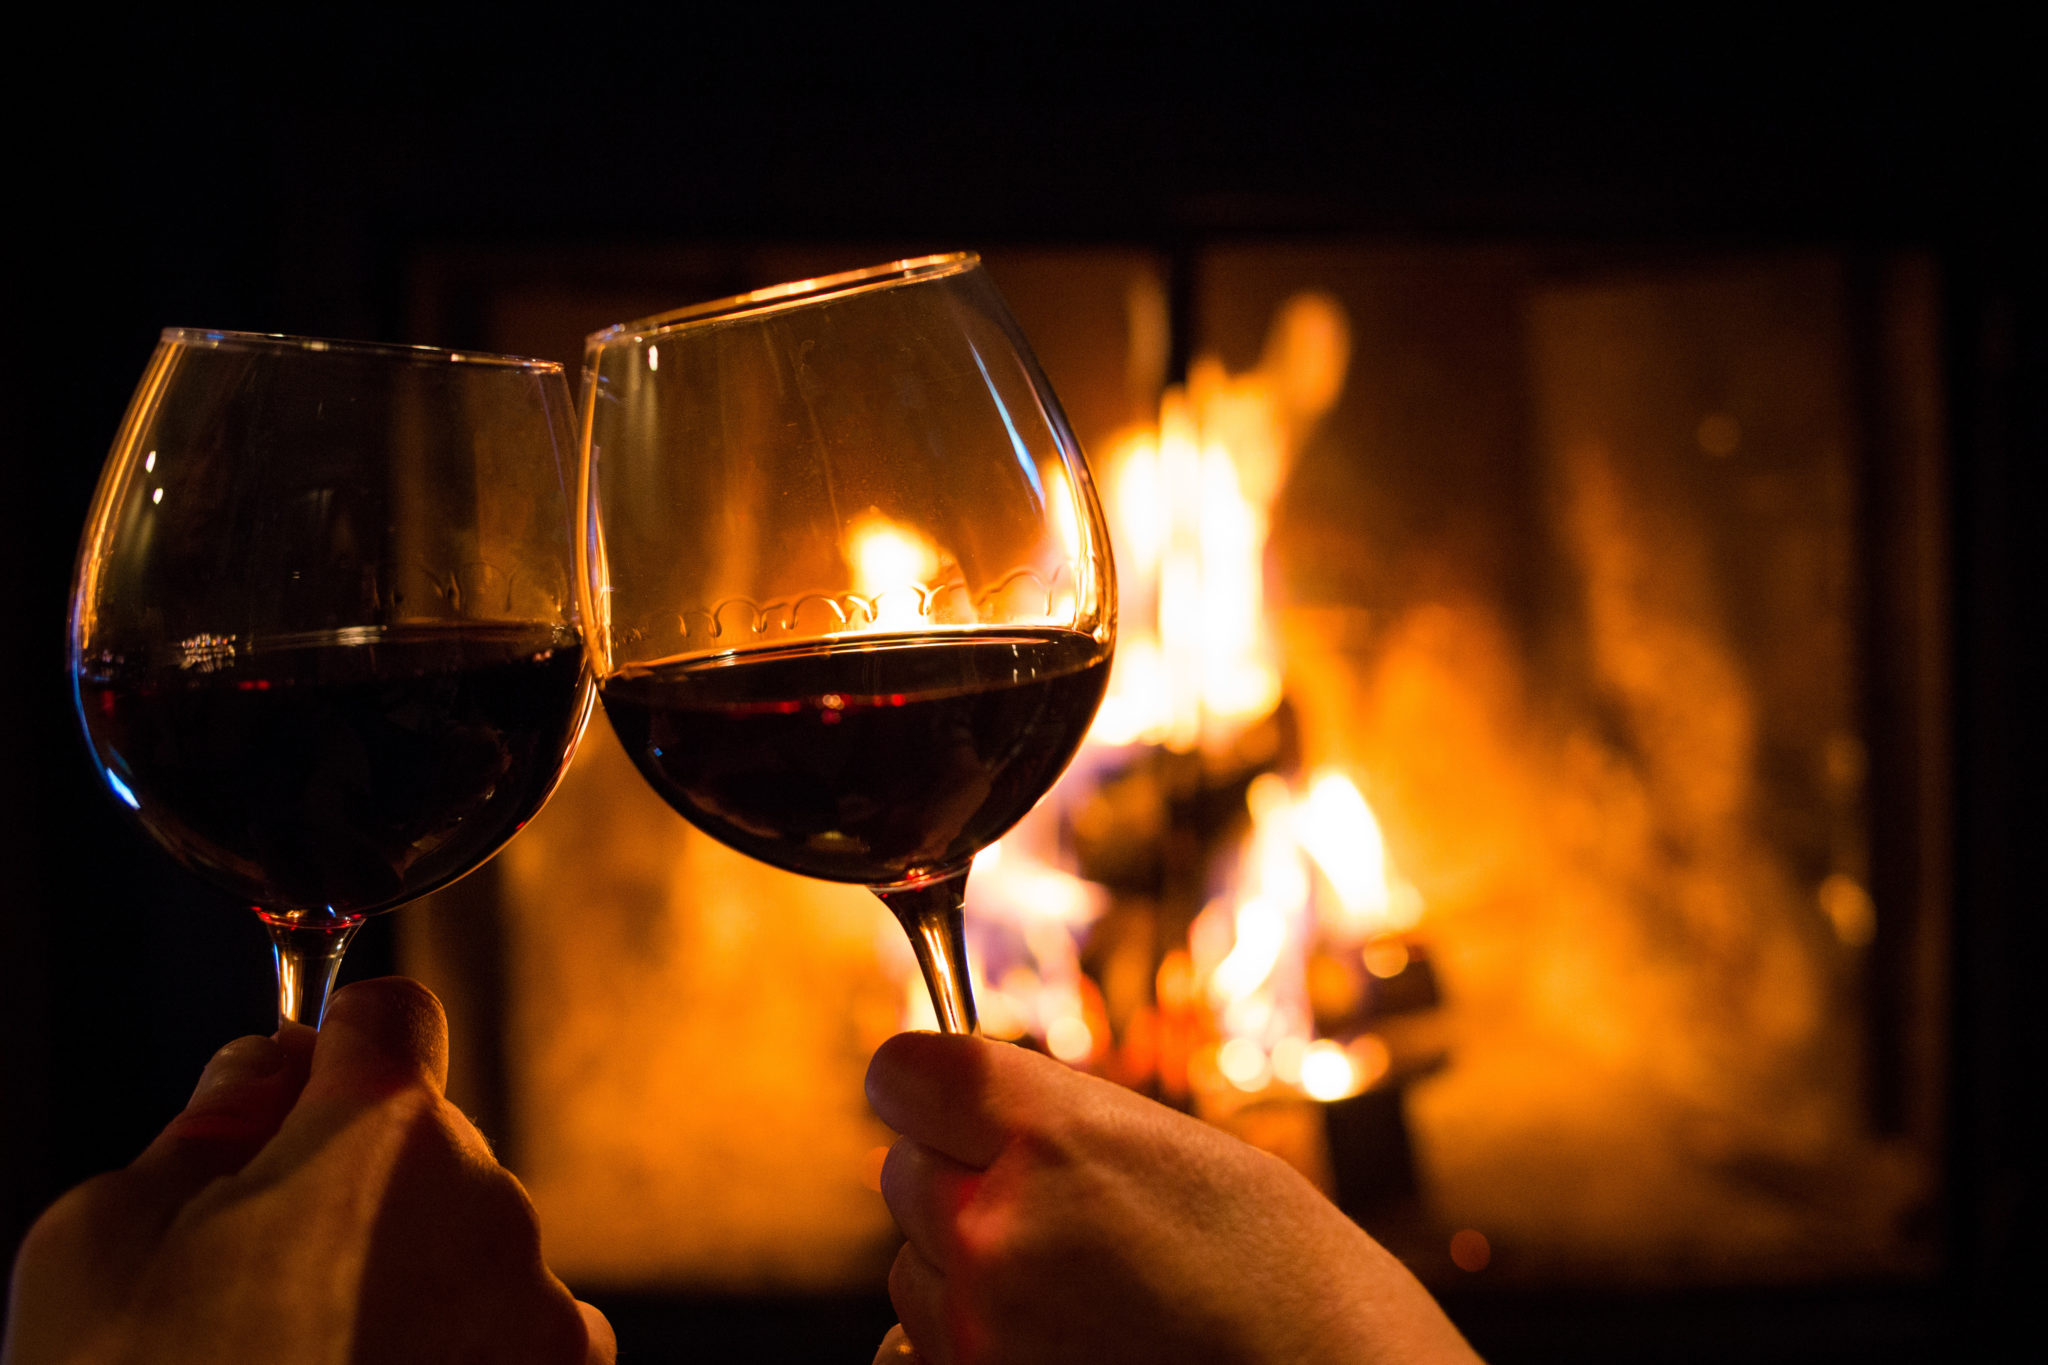 Romantic Winter Getaways Lancaster County, PA